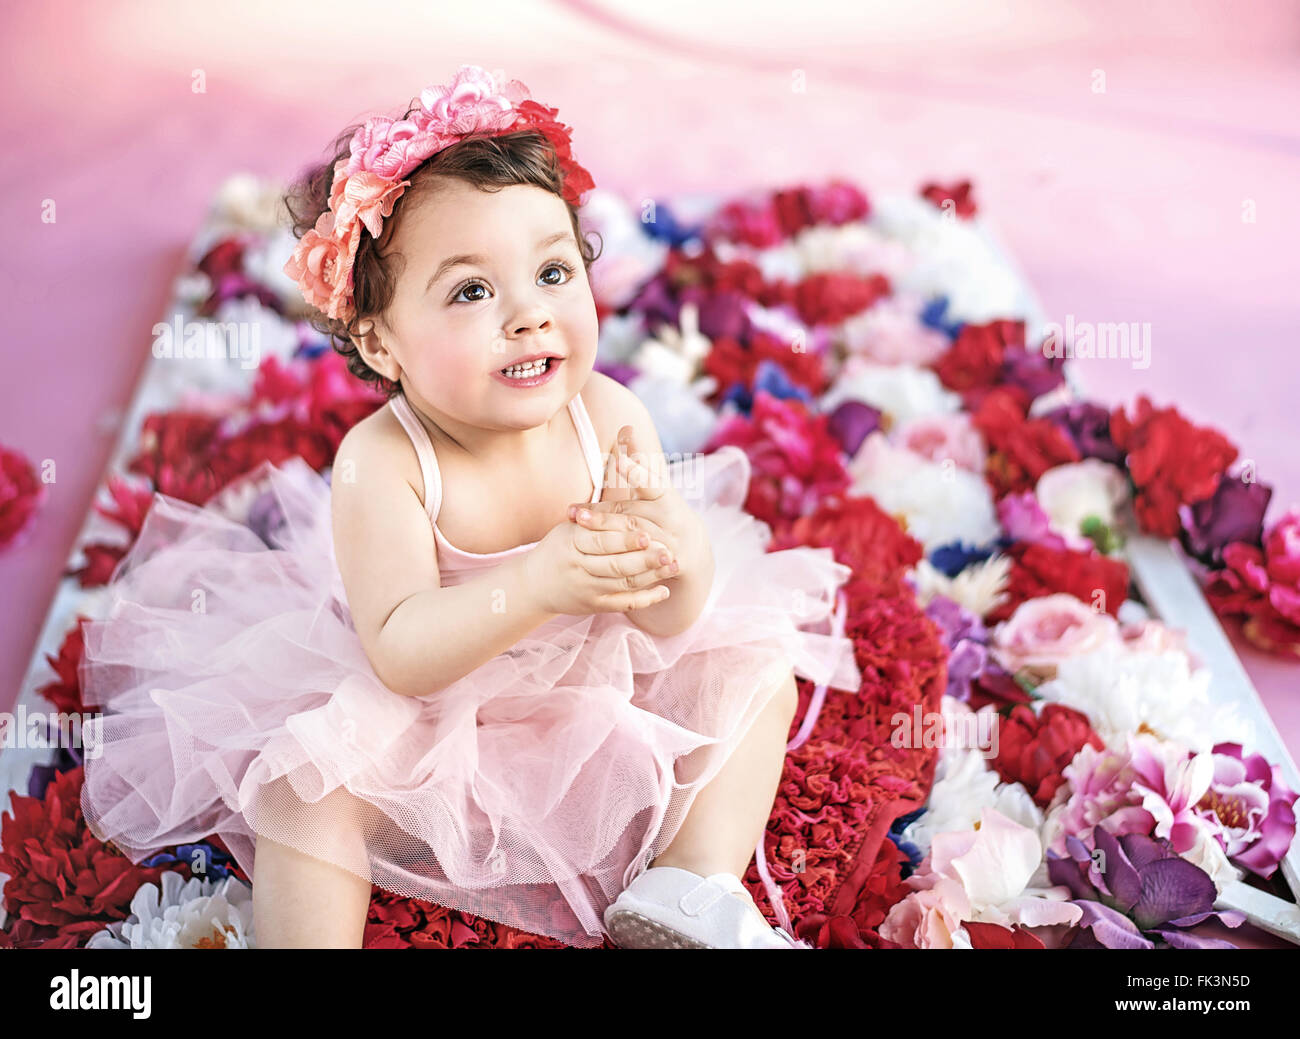 Cute girl sitting on a bunch of flowers - Stock Image